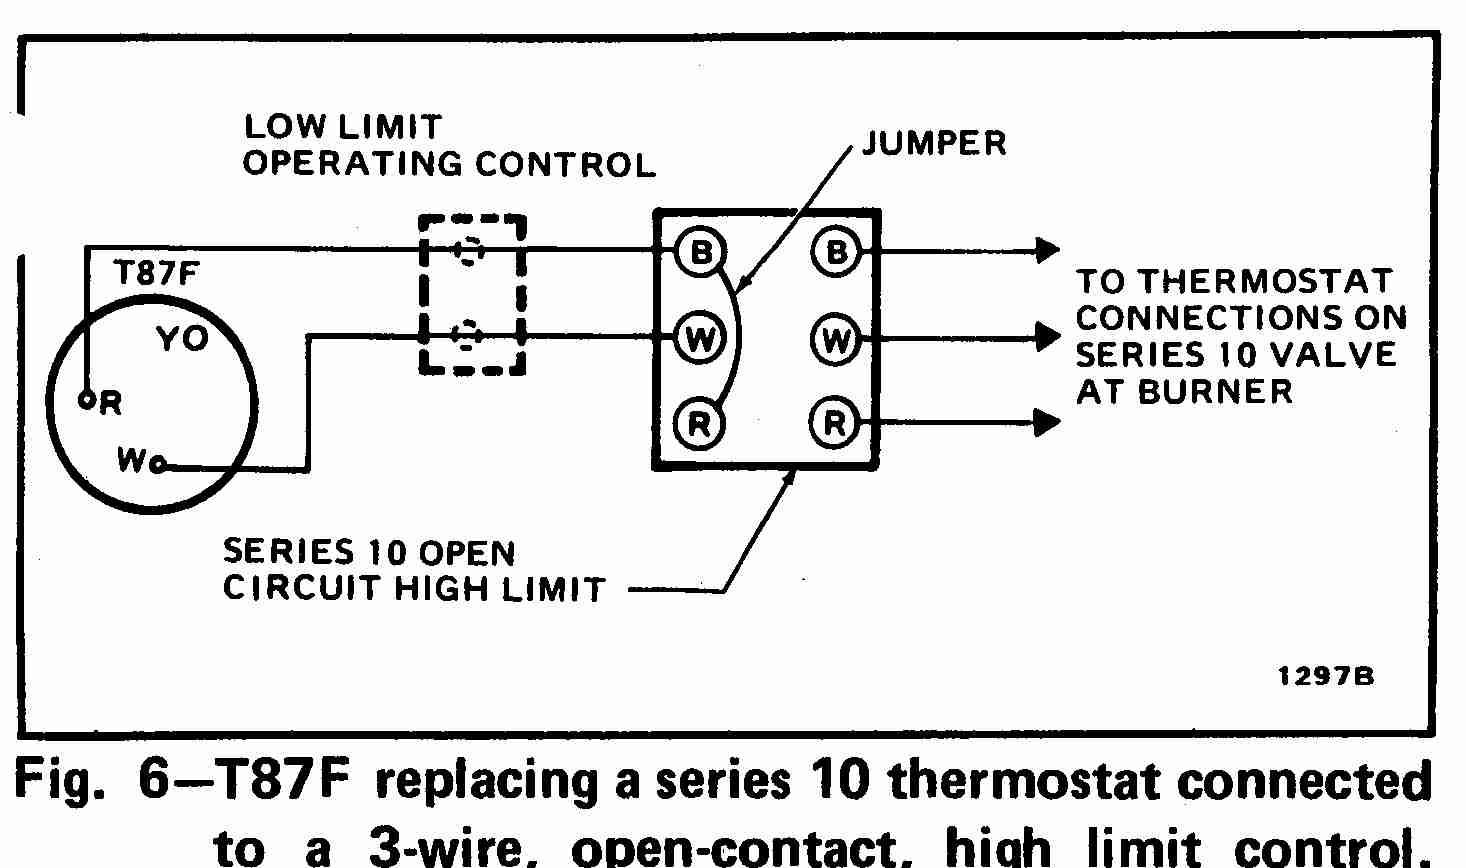 TT_T87F_0002_3WHL_DJF room thermostat wiring diagrams for hvac systems 2 wire thermostat wiring diagram heat only at webbmarketing.co